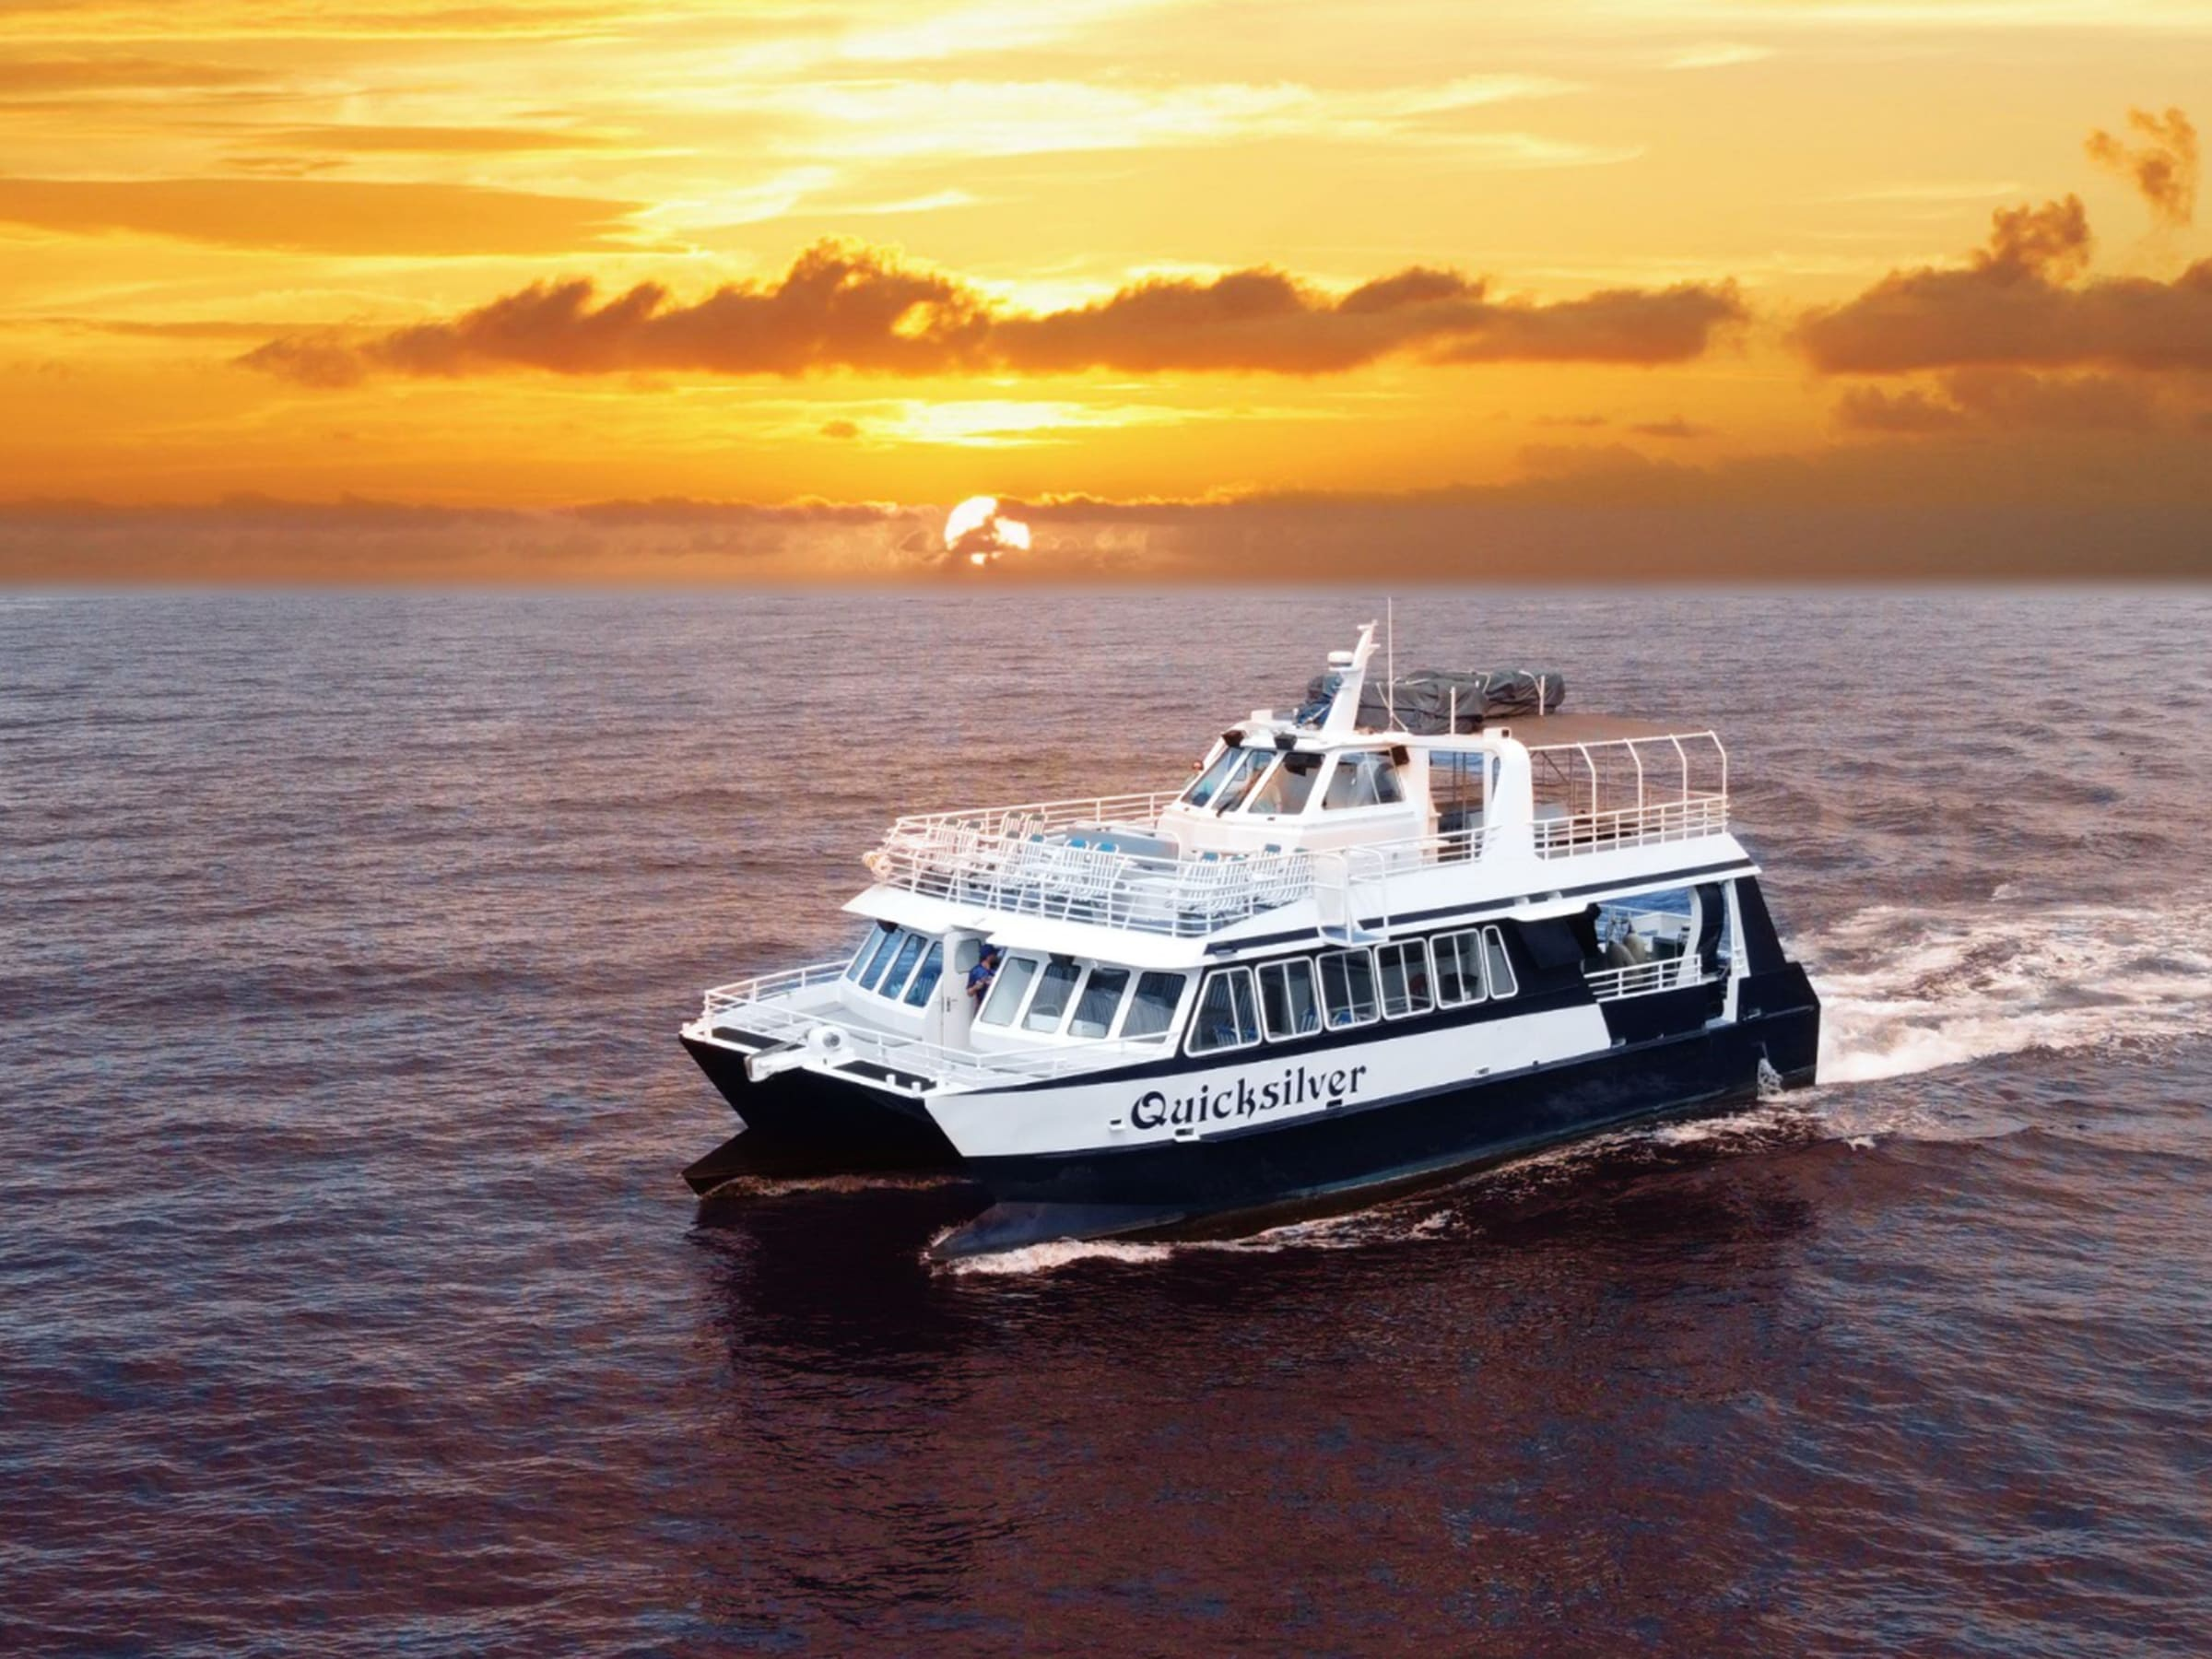 Quicksilver Lahaina Sunset Dinner Cruise [Open Now] tours, activities, fun  things to do in Maui(Hawaii)|VELTRA